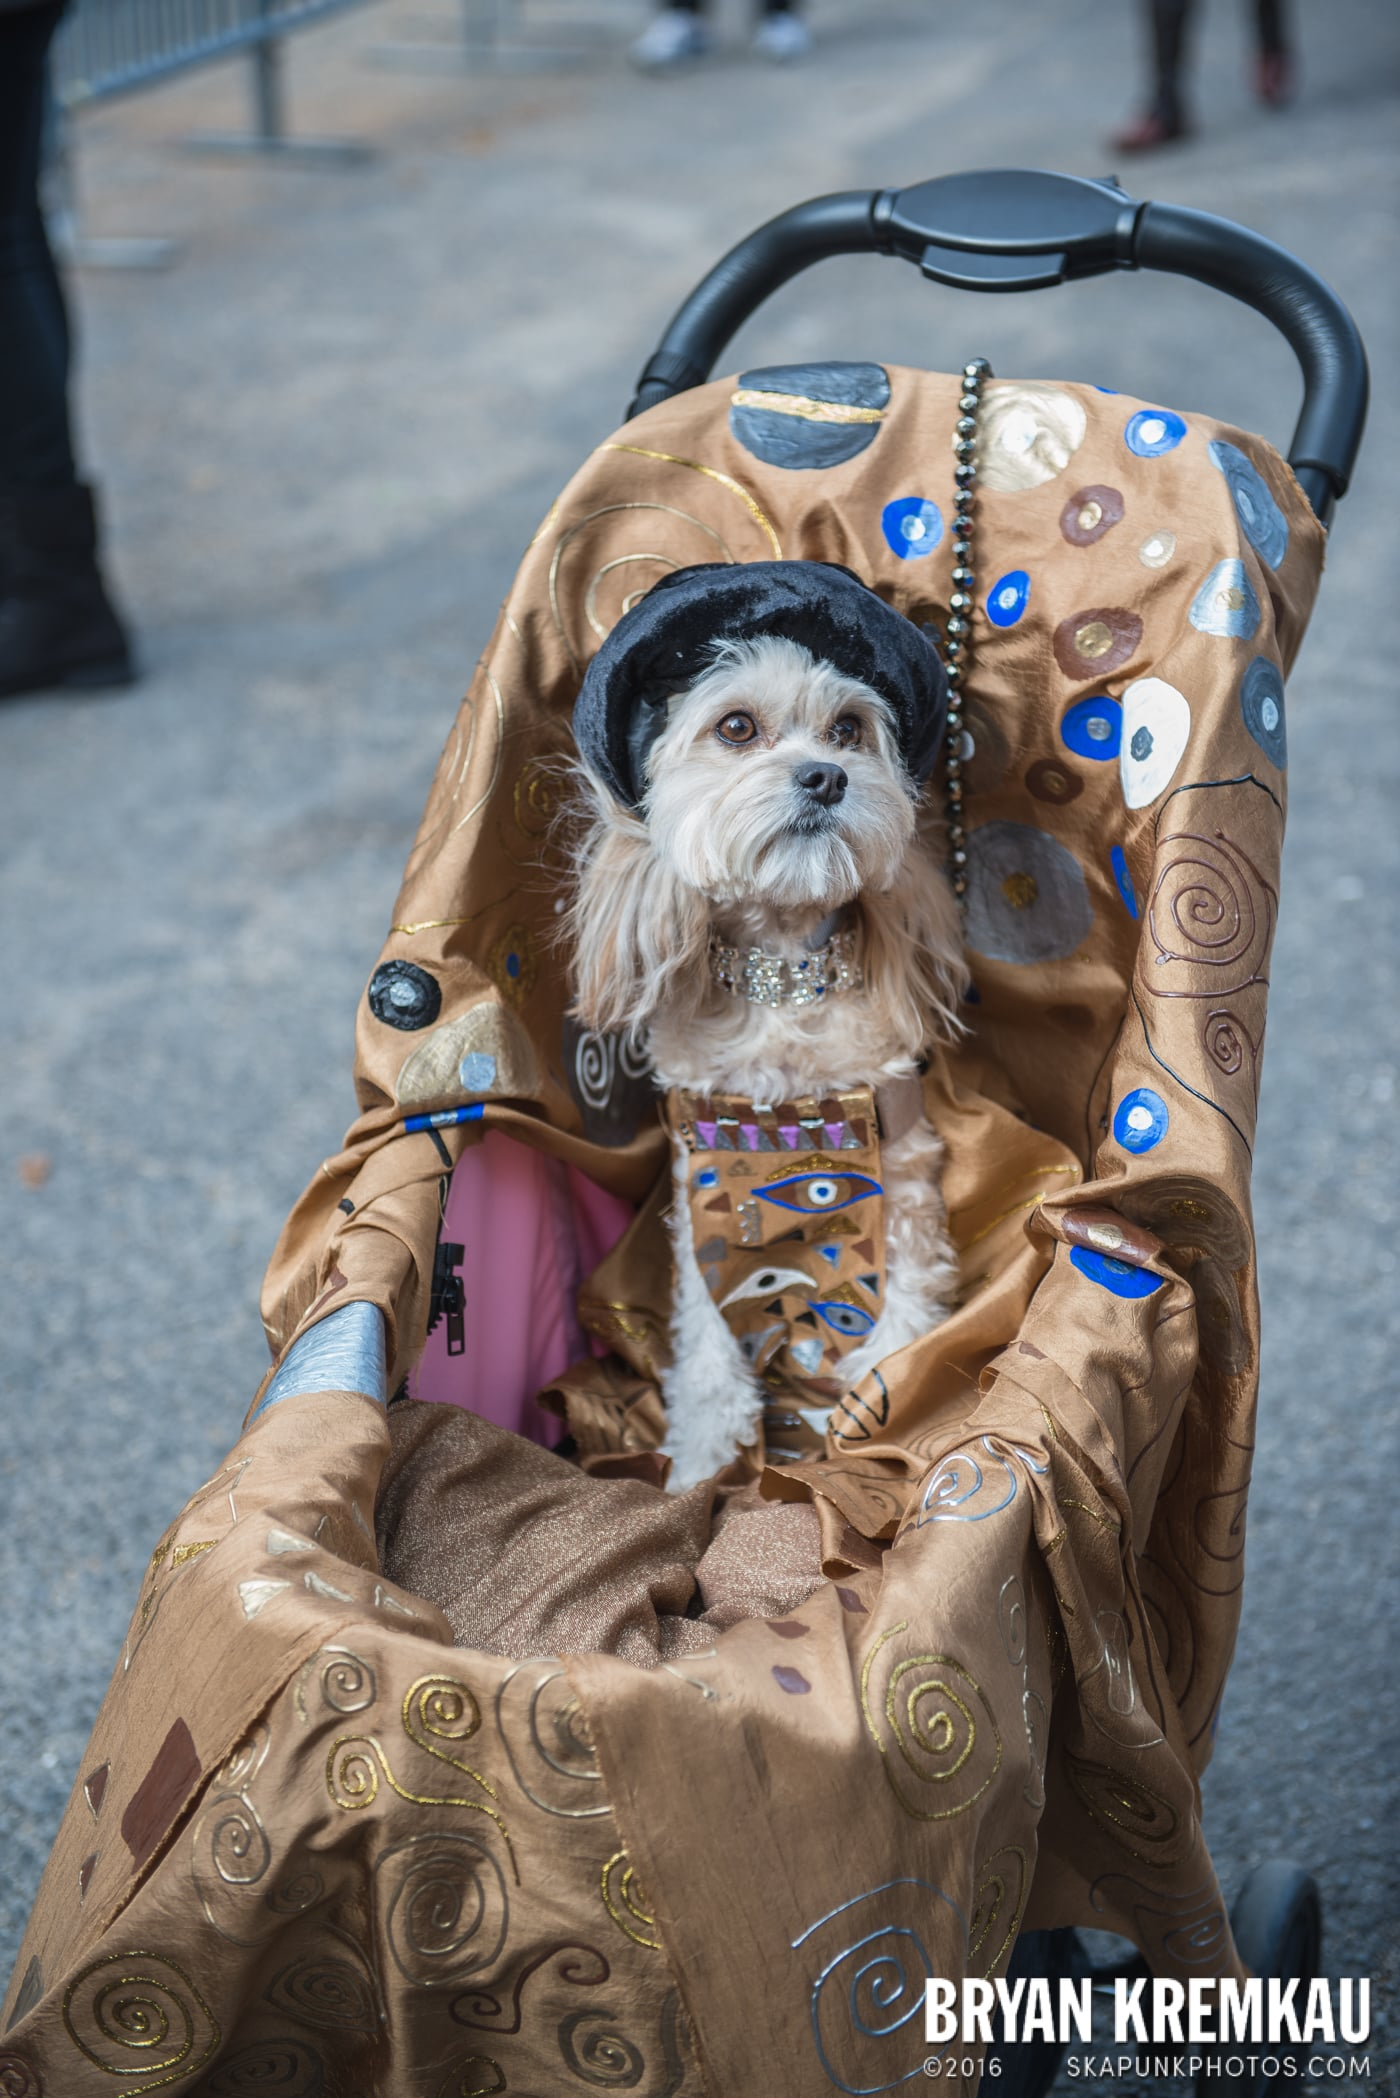 Tompkins Square Halloween Dog Parade 2015 @ Tompkins Square Park, NYC – 10.24.15 (70)